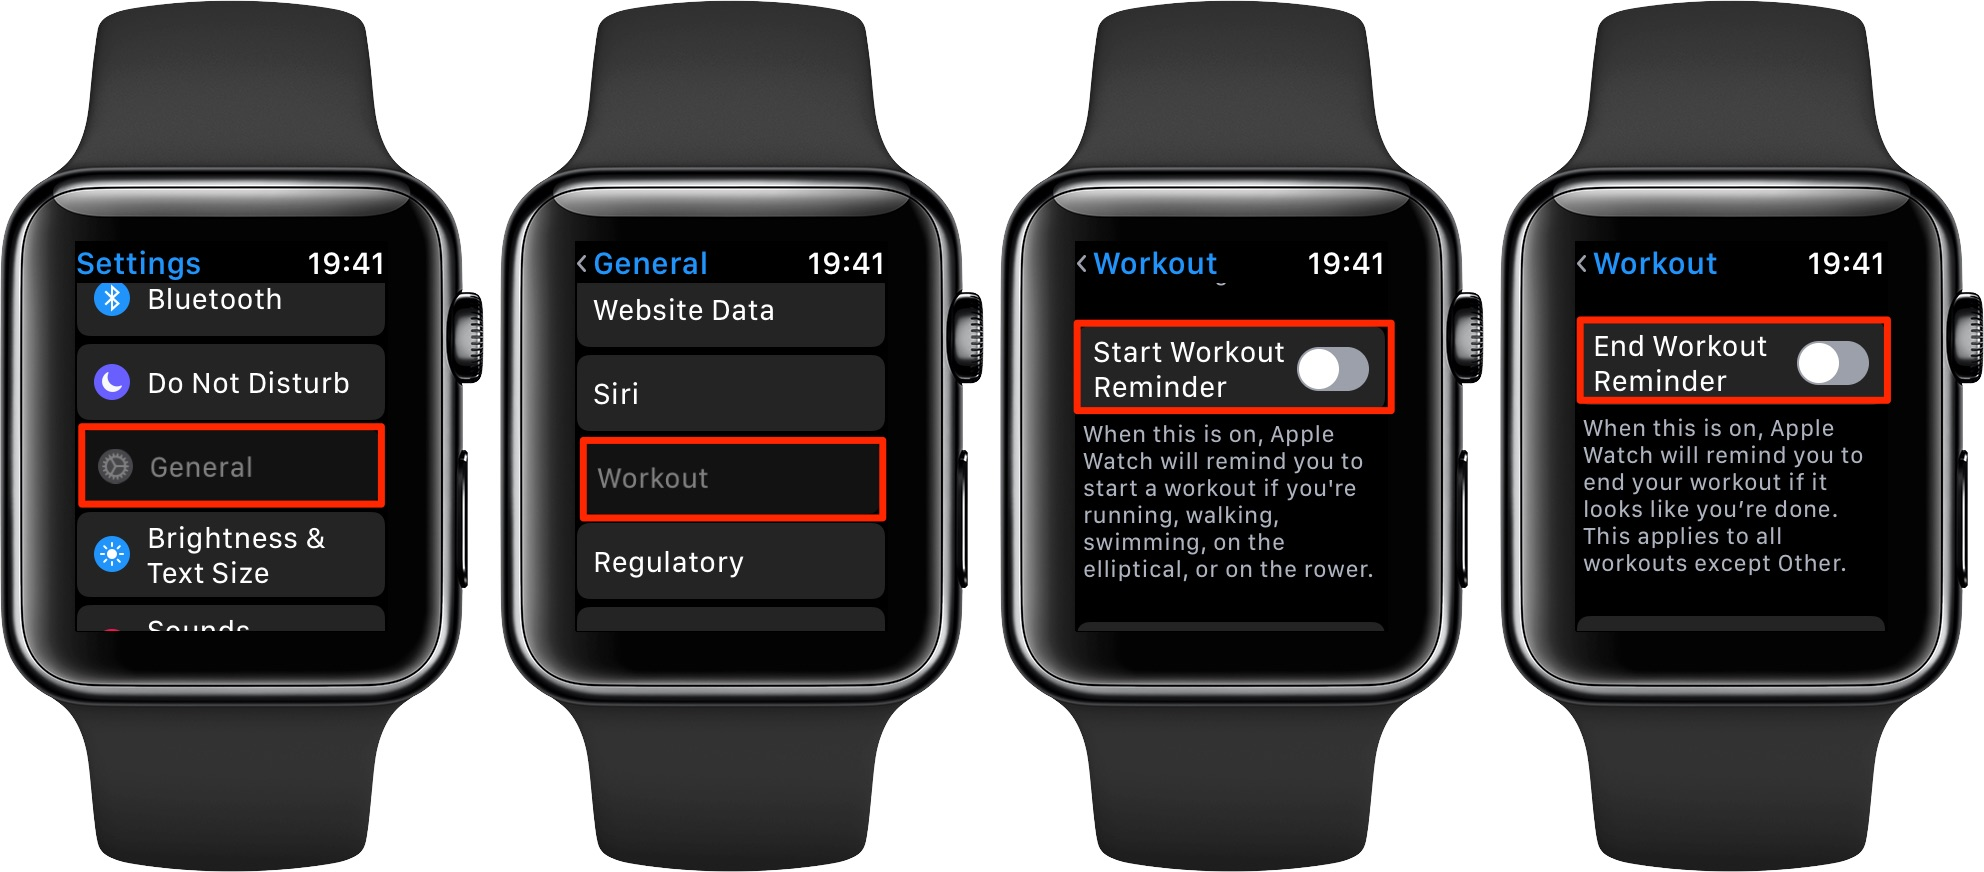 Disabling auto-workout reminders in the Settings app on Apple Watch